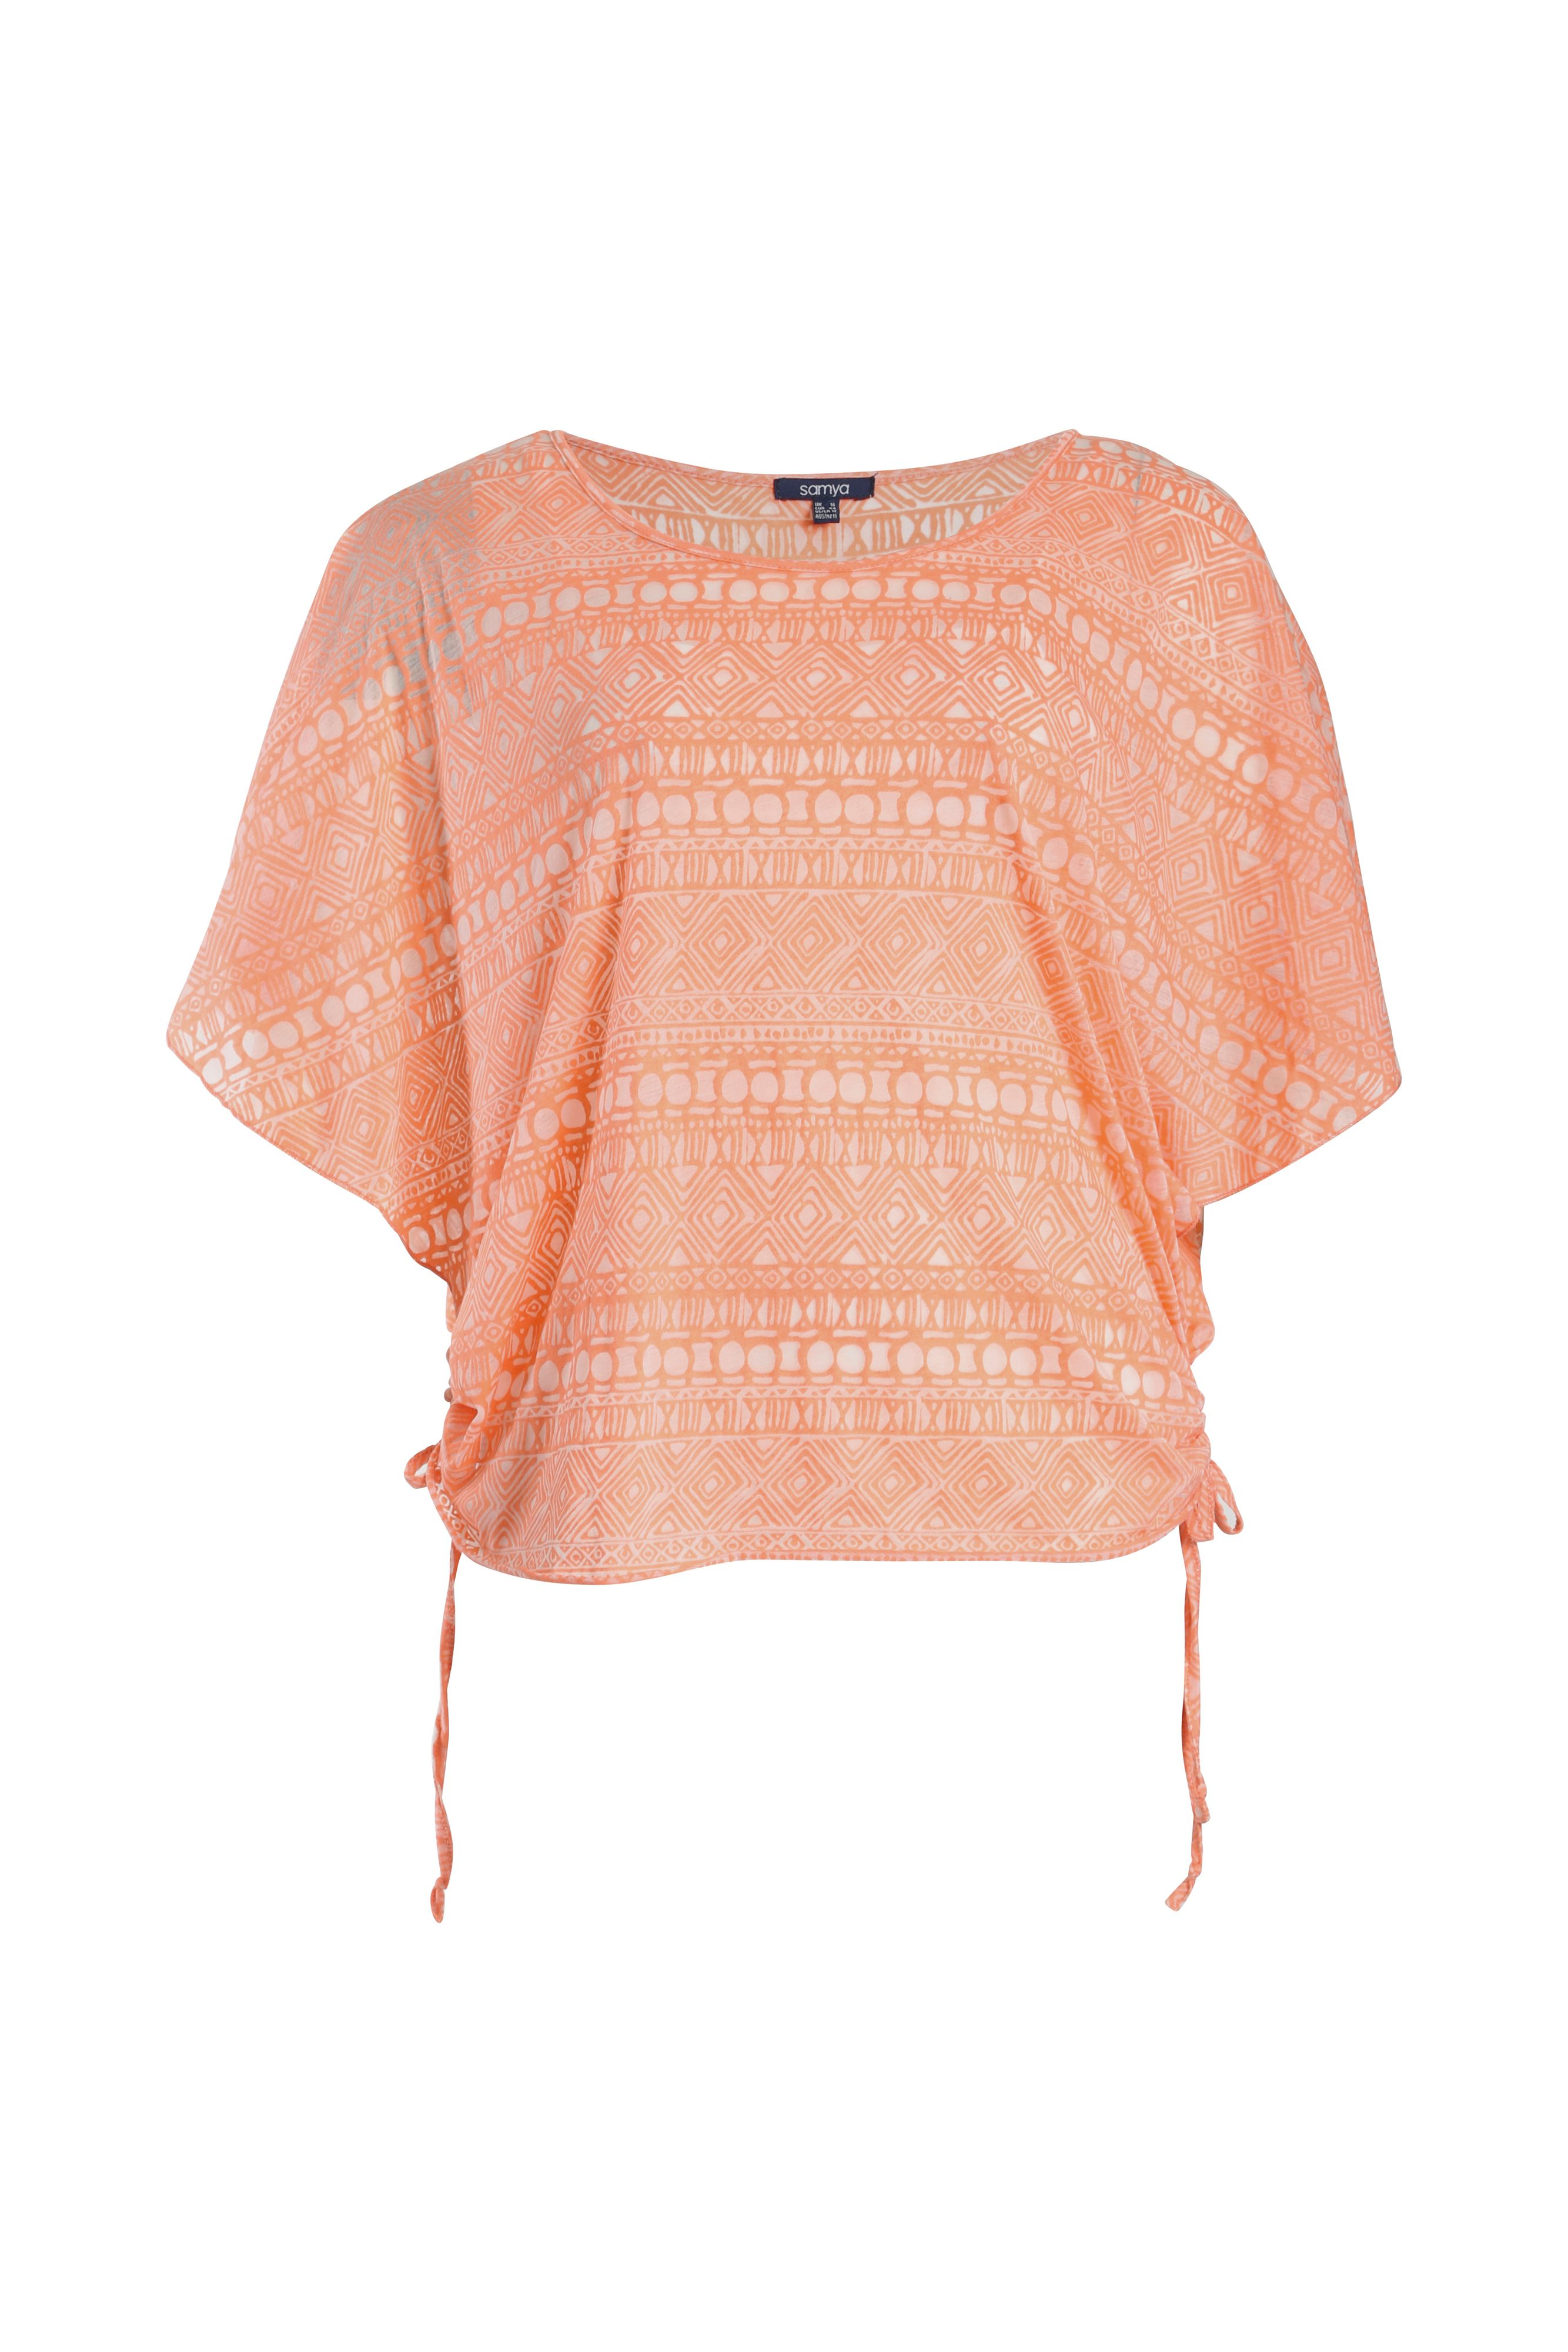 Aztec printed oversized top